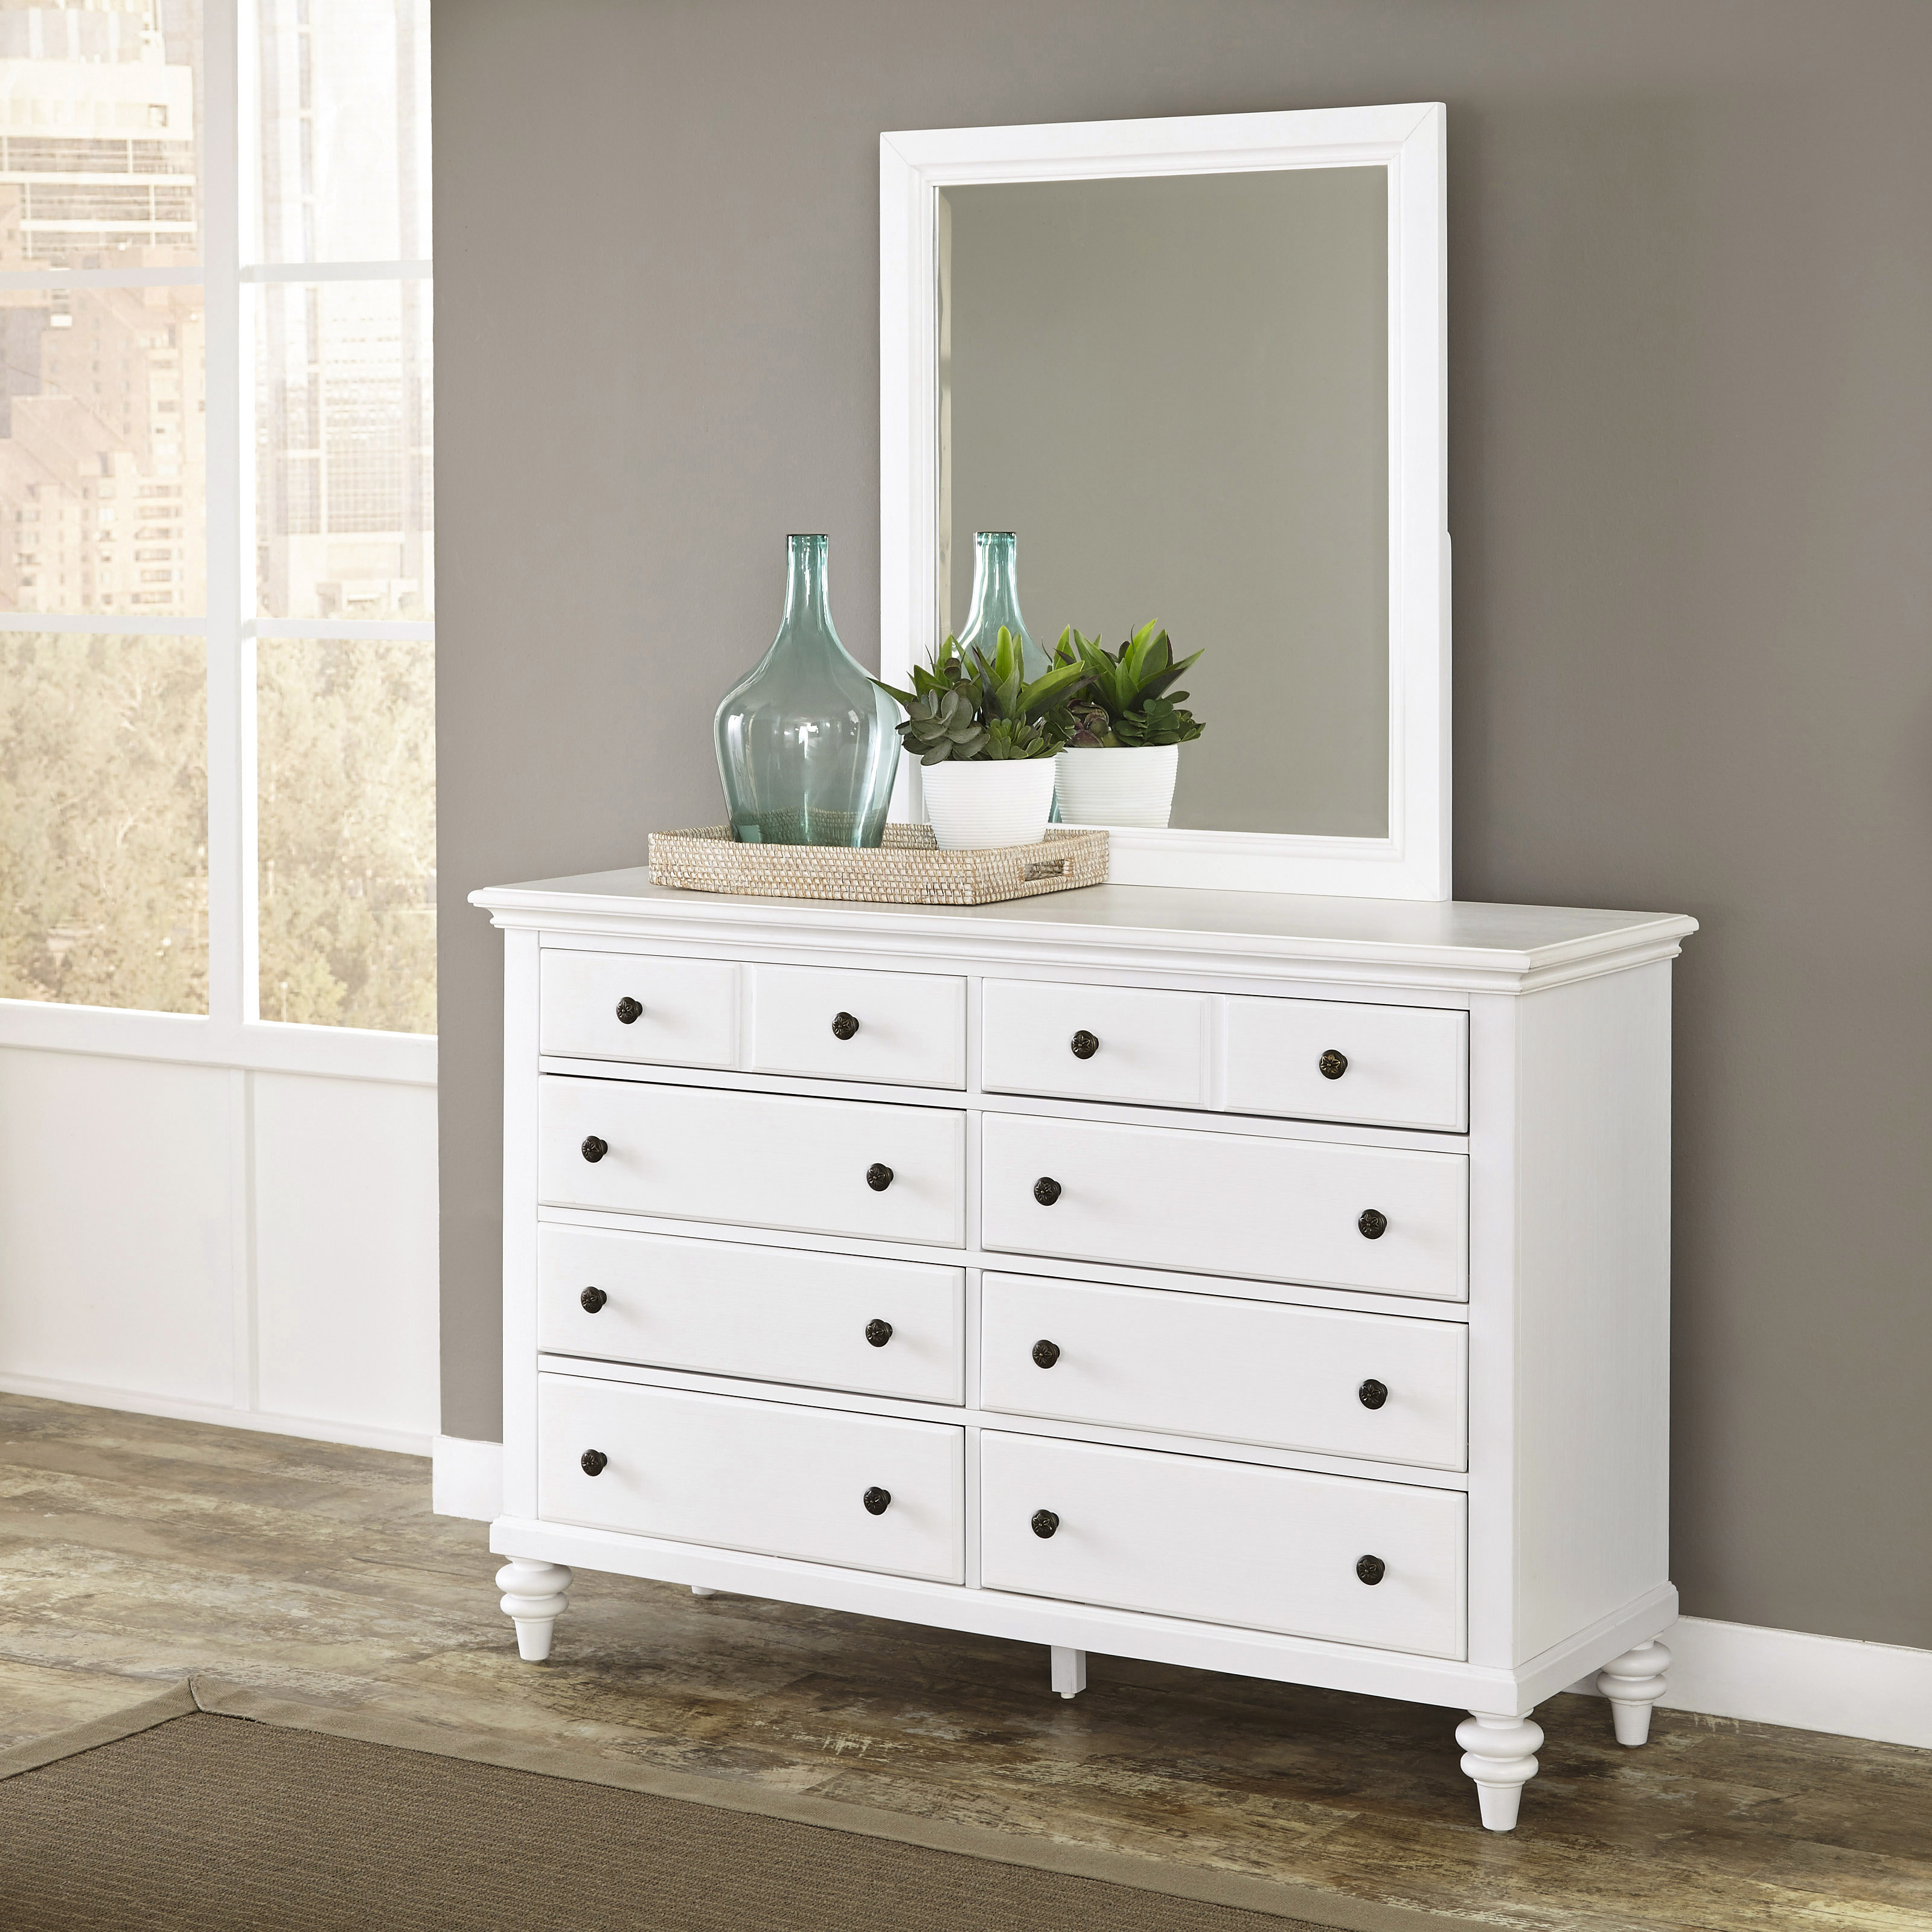 Home Styles Bermuda Brushed White Dresser and Mirror